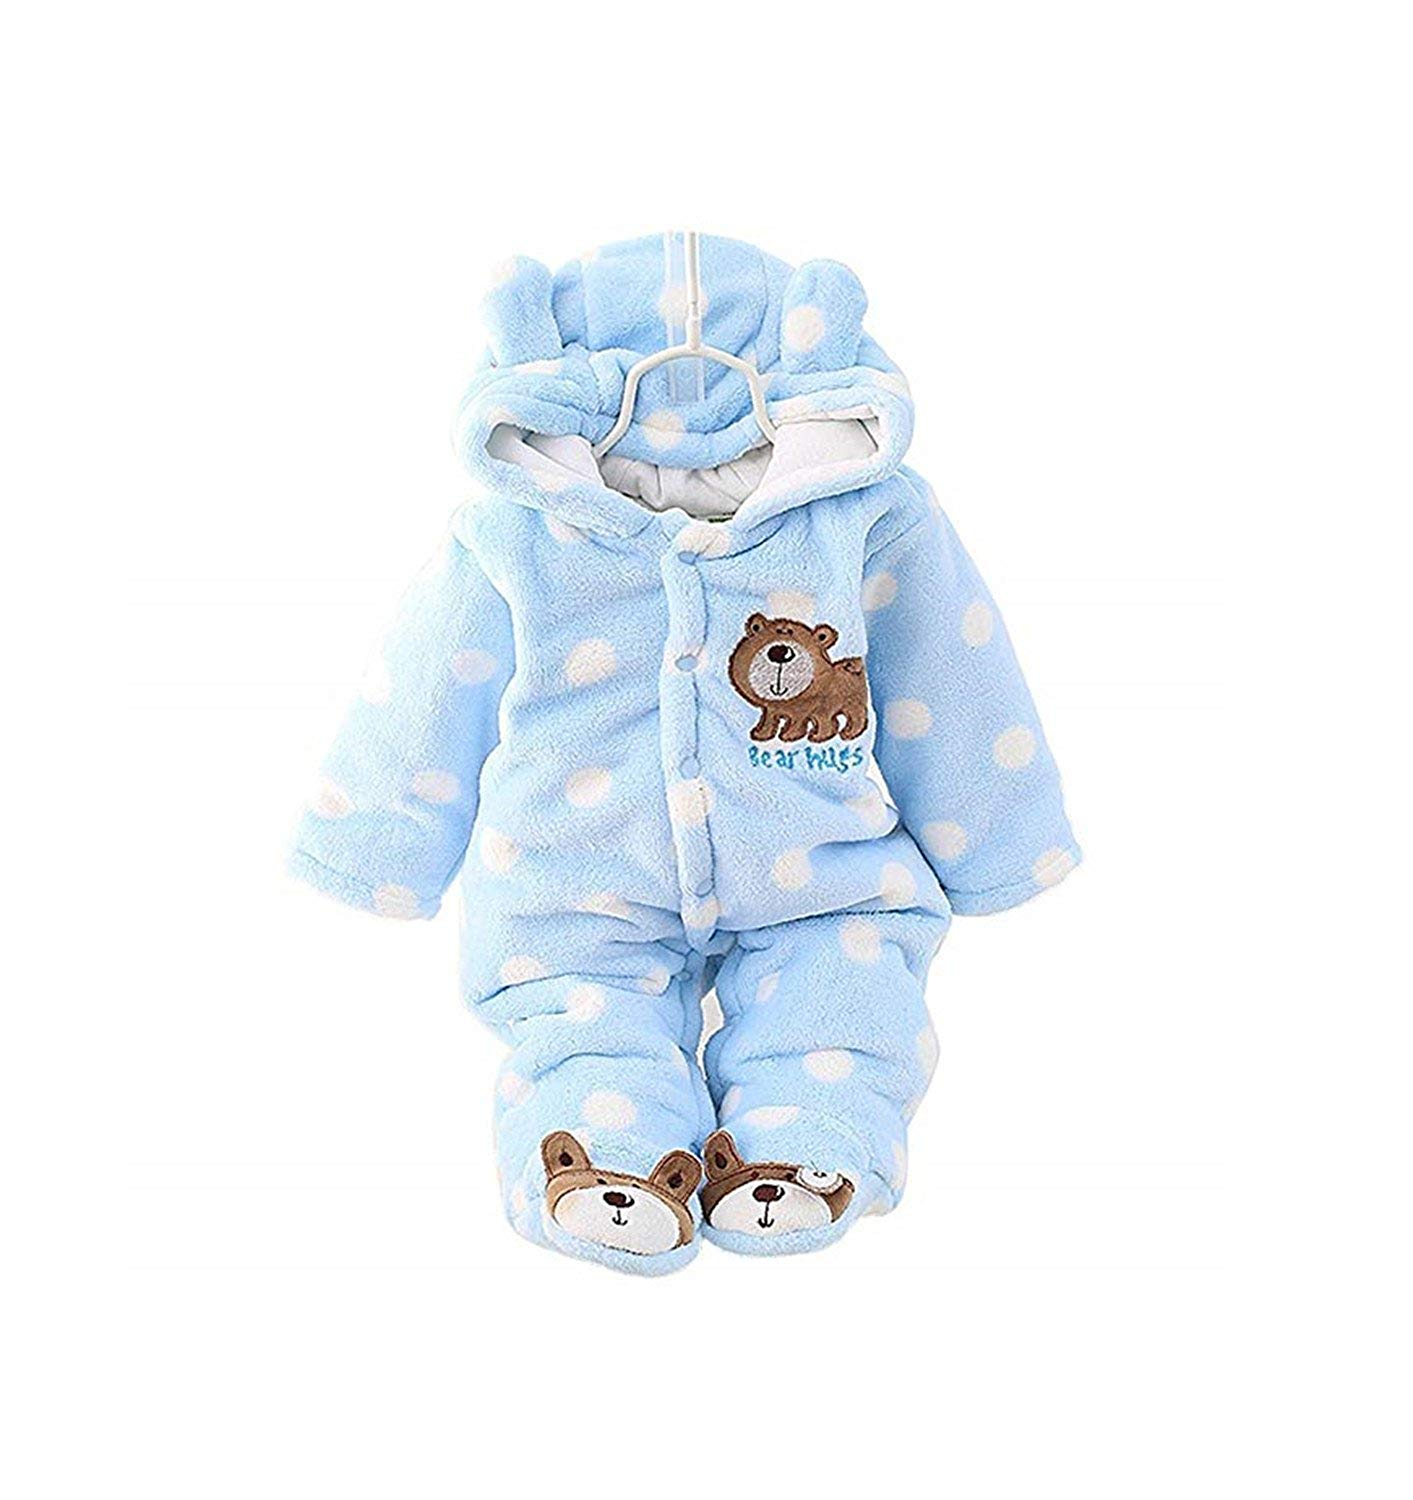 Newborn Snowsuit Baby Boy Winter Bodysuit Clothing,Fleece Romper Cartoon Infant Babies Boy Clothes Snowsuit Blue Jumpsuits